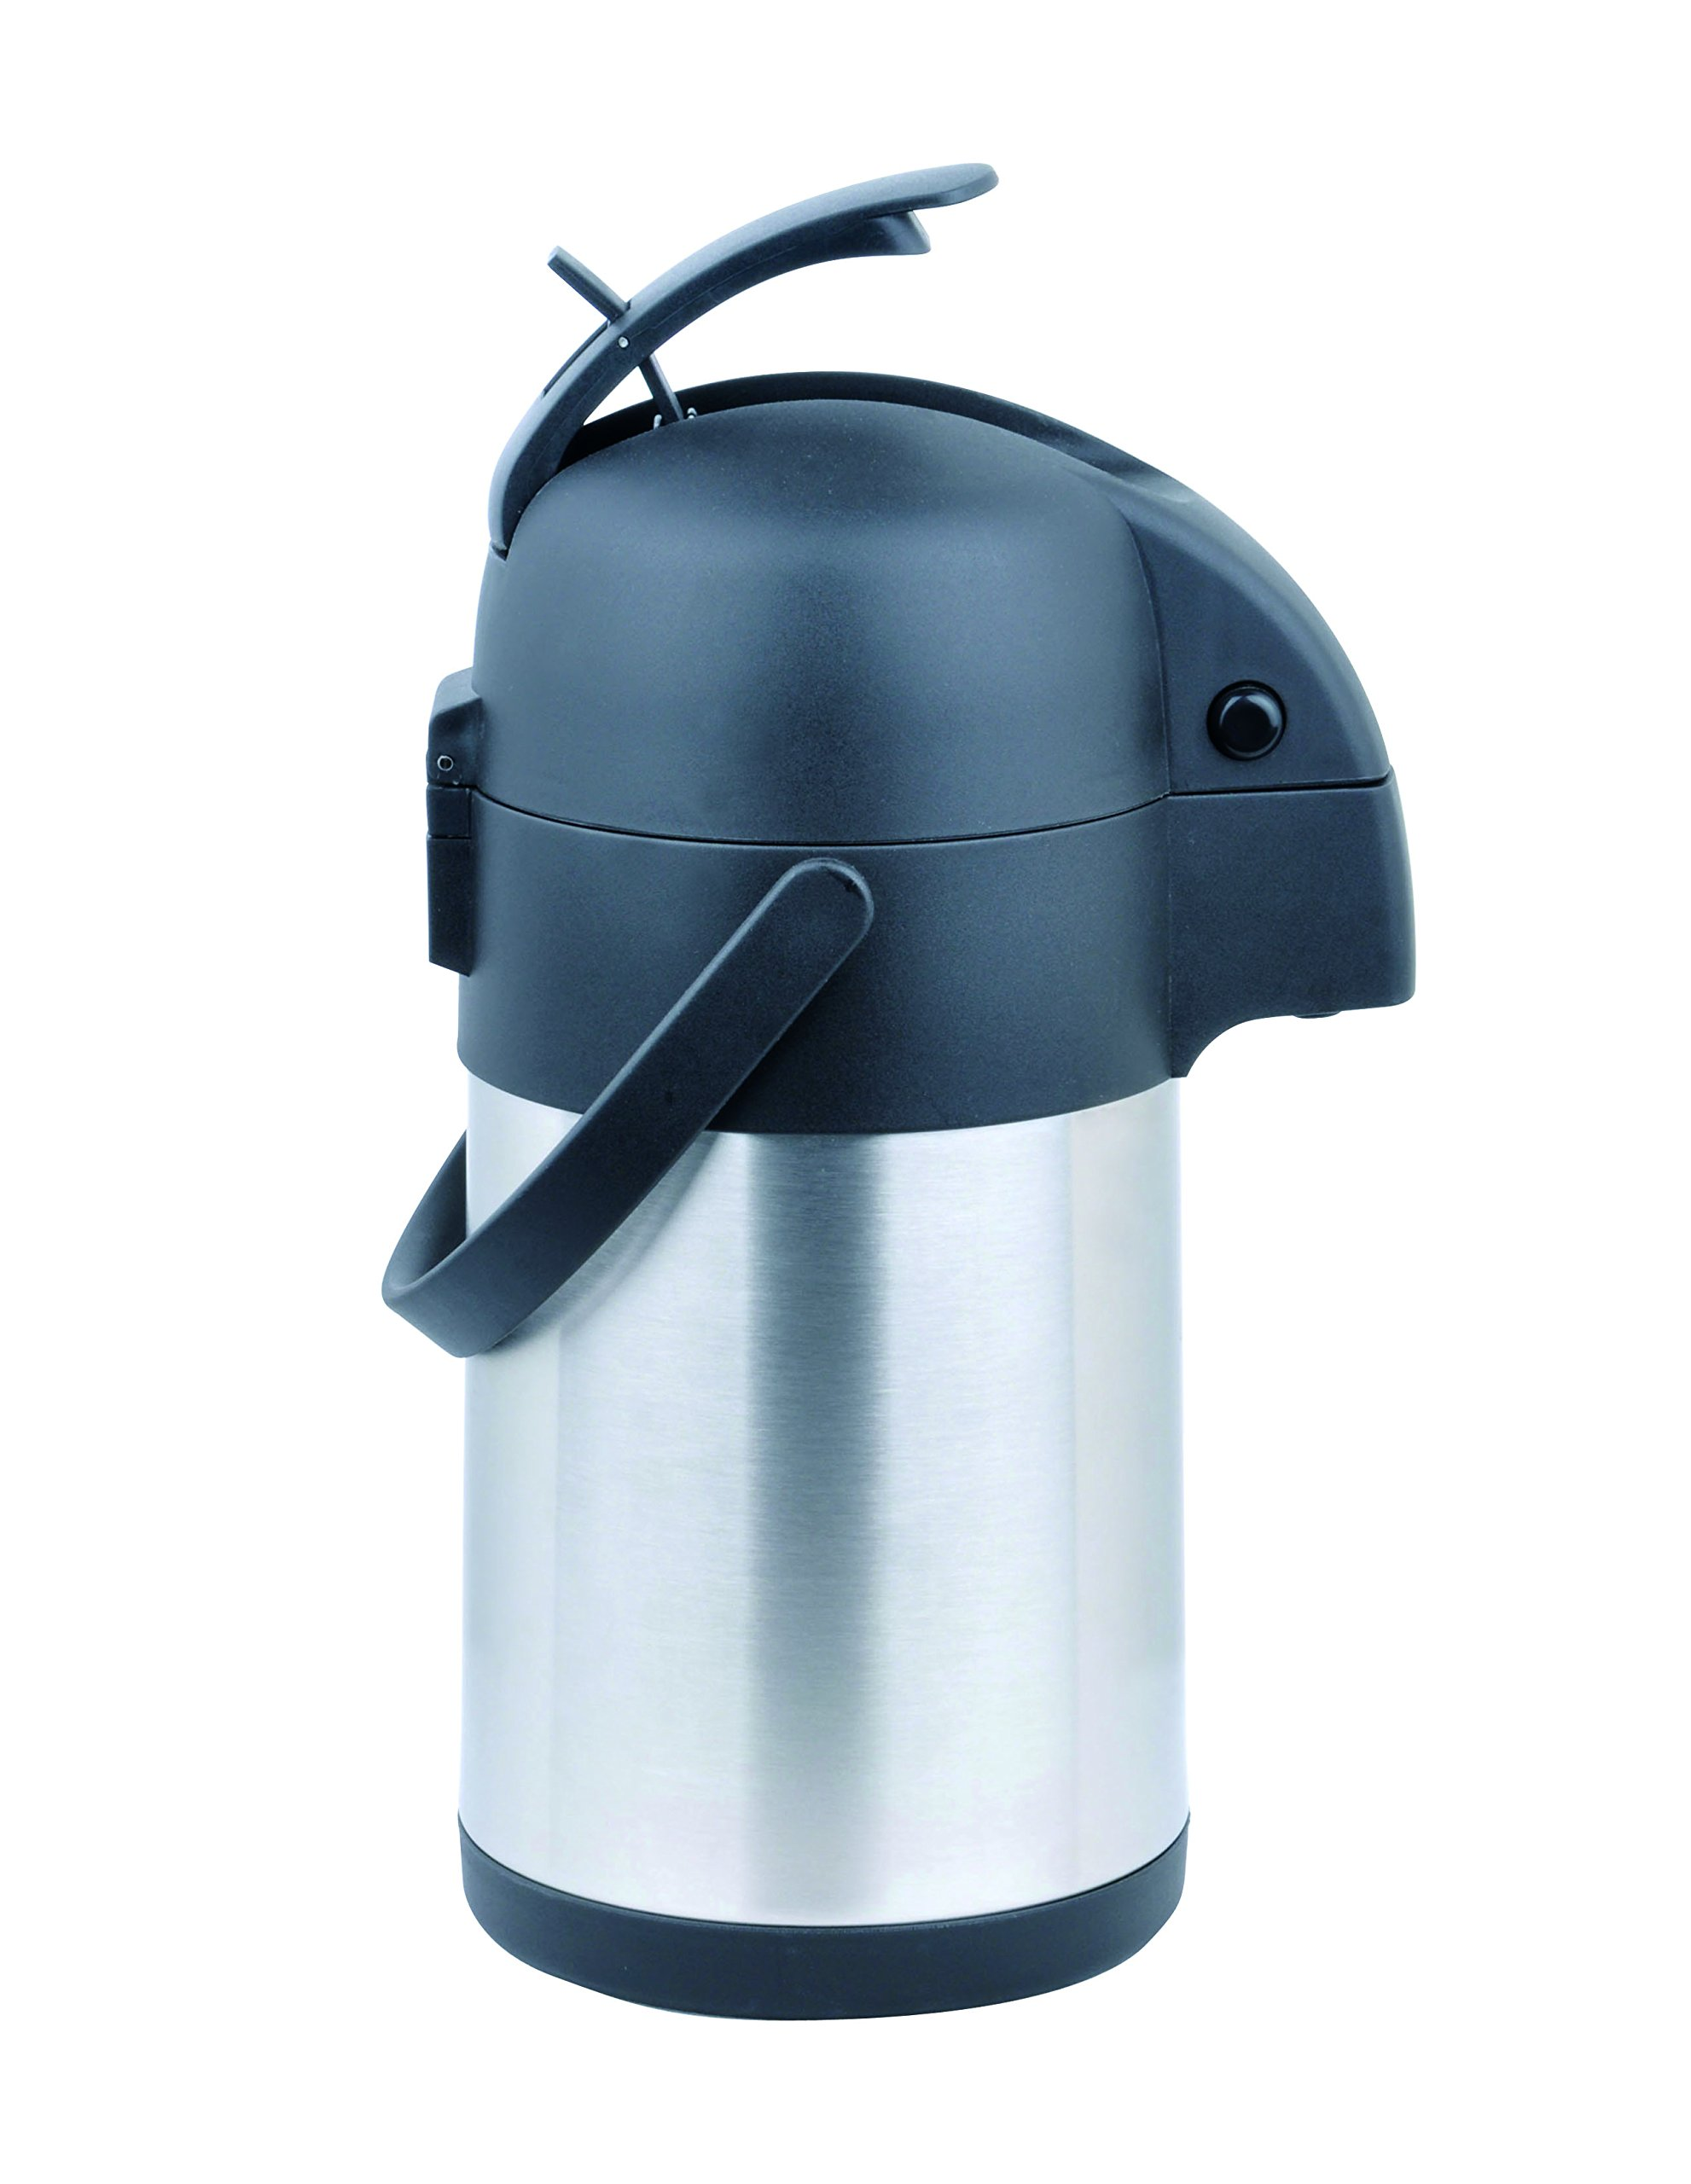 Cafe Moka Stainless Steel Coffee Airpot - 2.2 Ltr by Cafe Moka